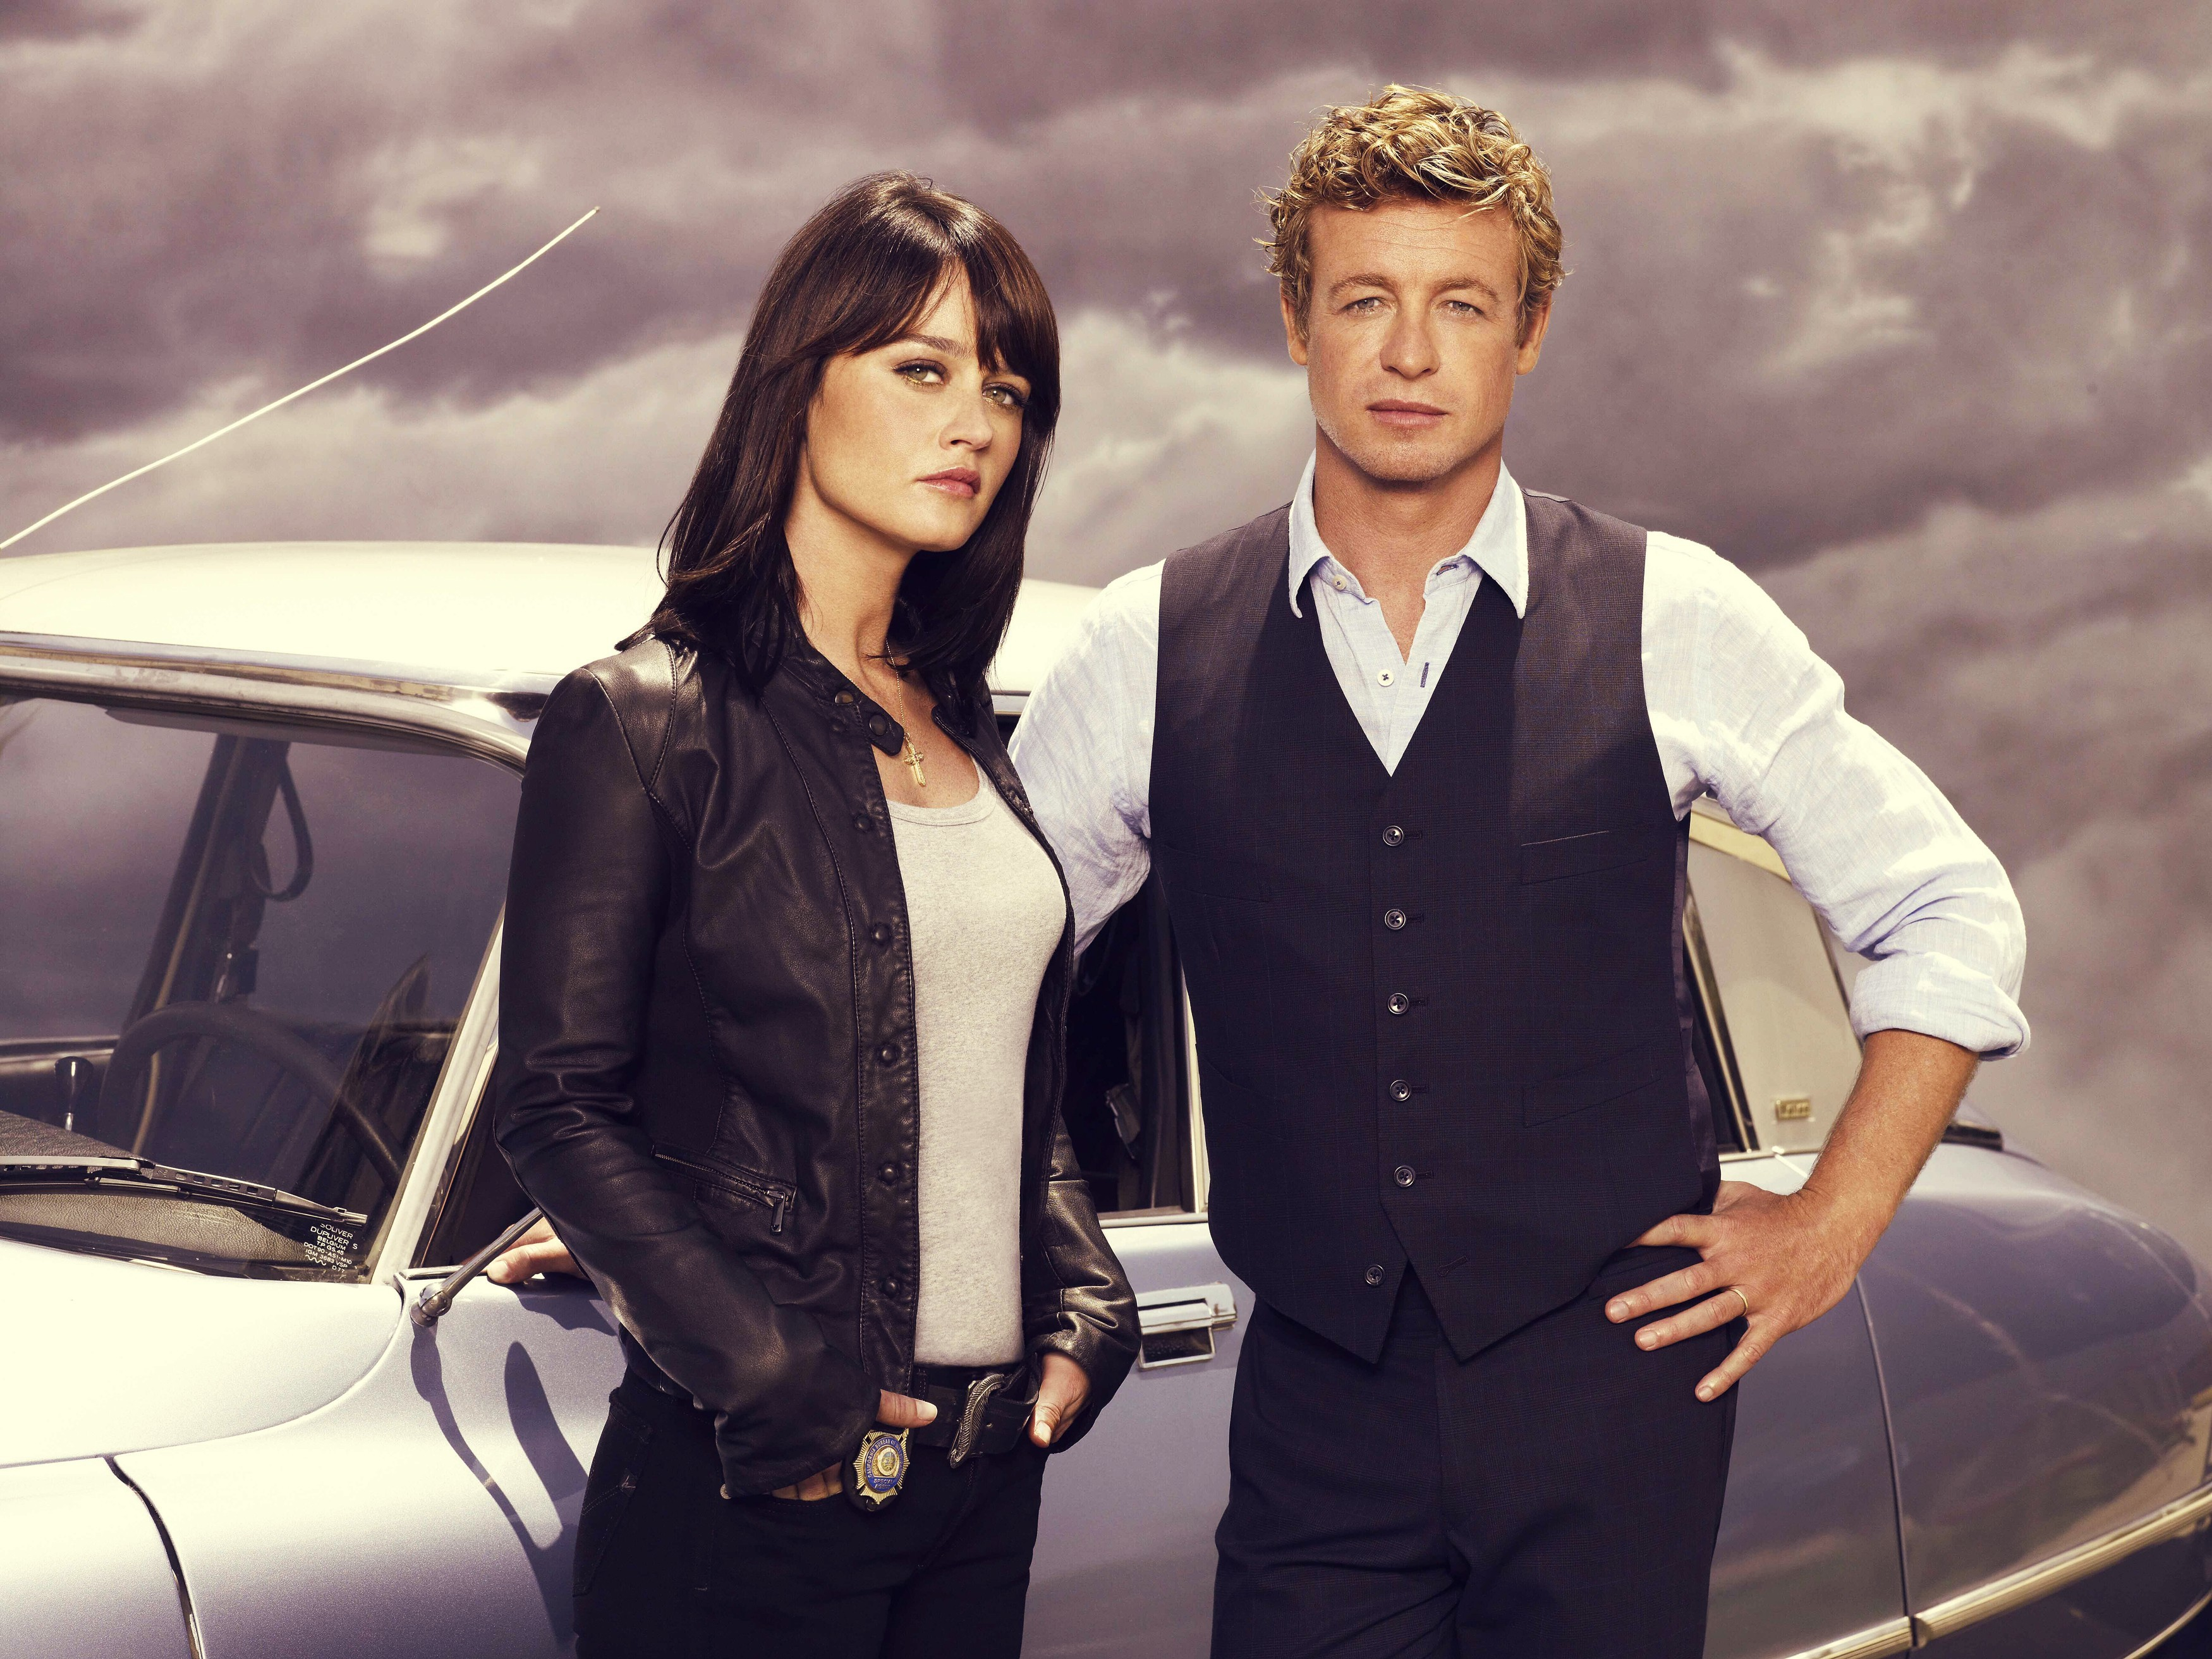 simon baker The Mentalist HD Wallpaper